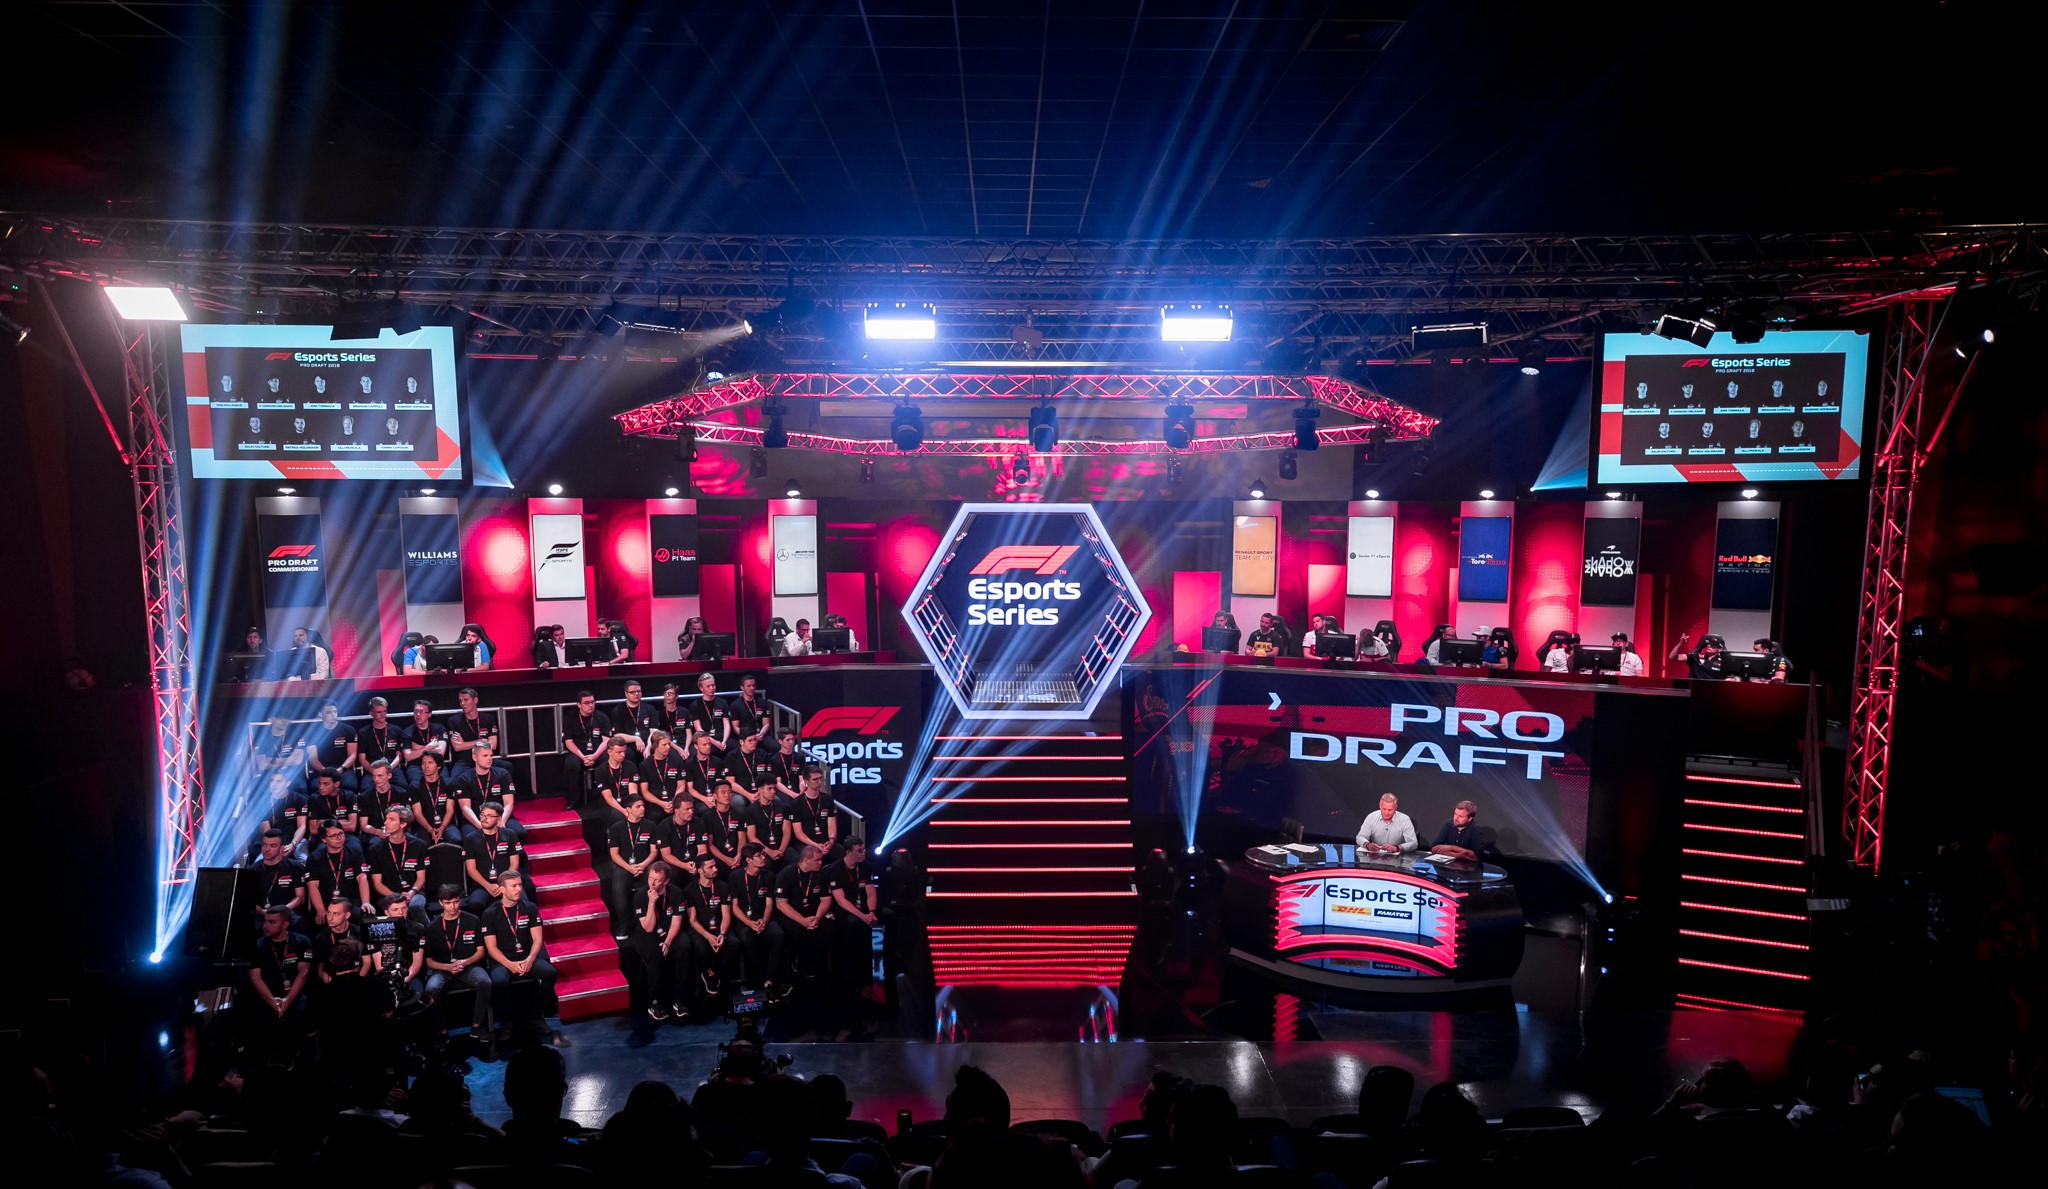 Esports gets attention of F1 drivers and sports athletes